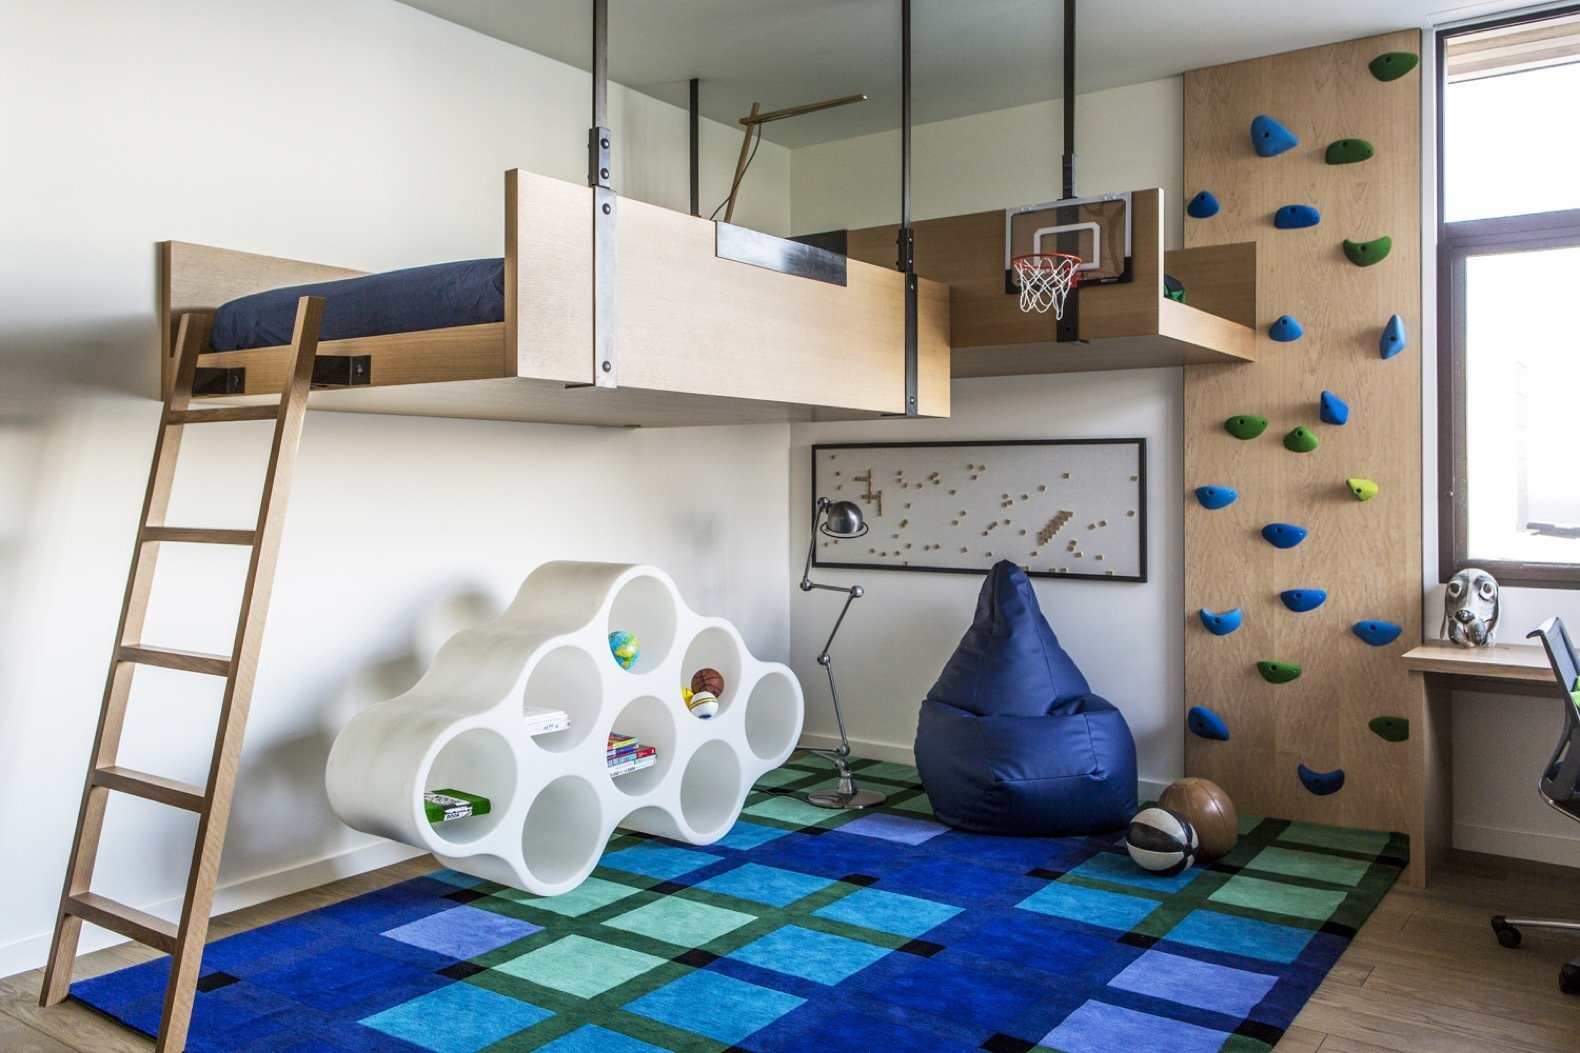 Bedroom, Medium Hardwood Floor, Bed, and Chair The clients' teenage son was given a more colorful bedroom with an elevated bed and a small climbing wall.   Photo 11 of 14 in An Energy-Conscious Home Gets Woven Into a Waterfront Landscape